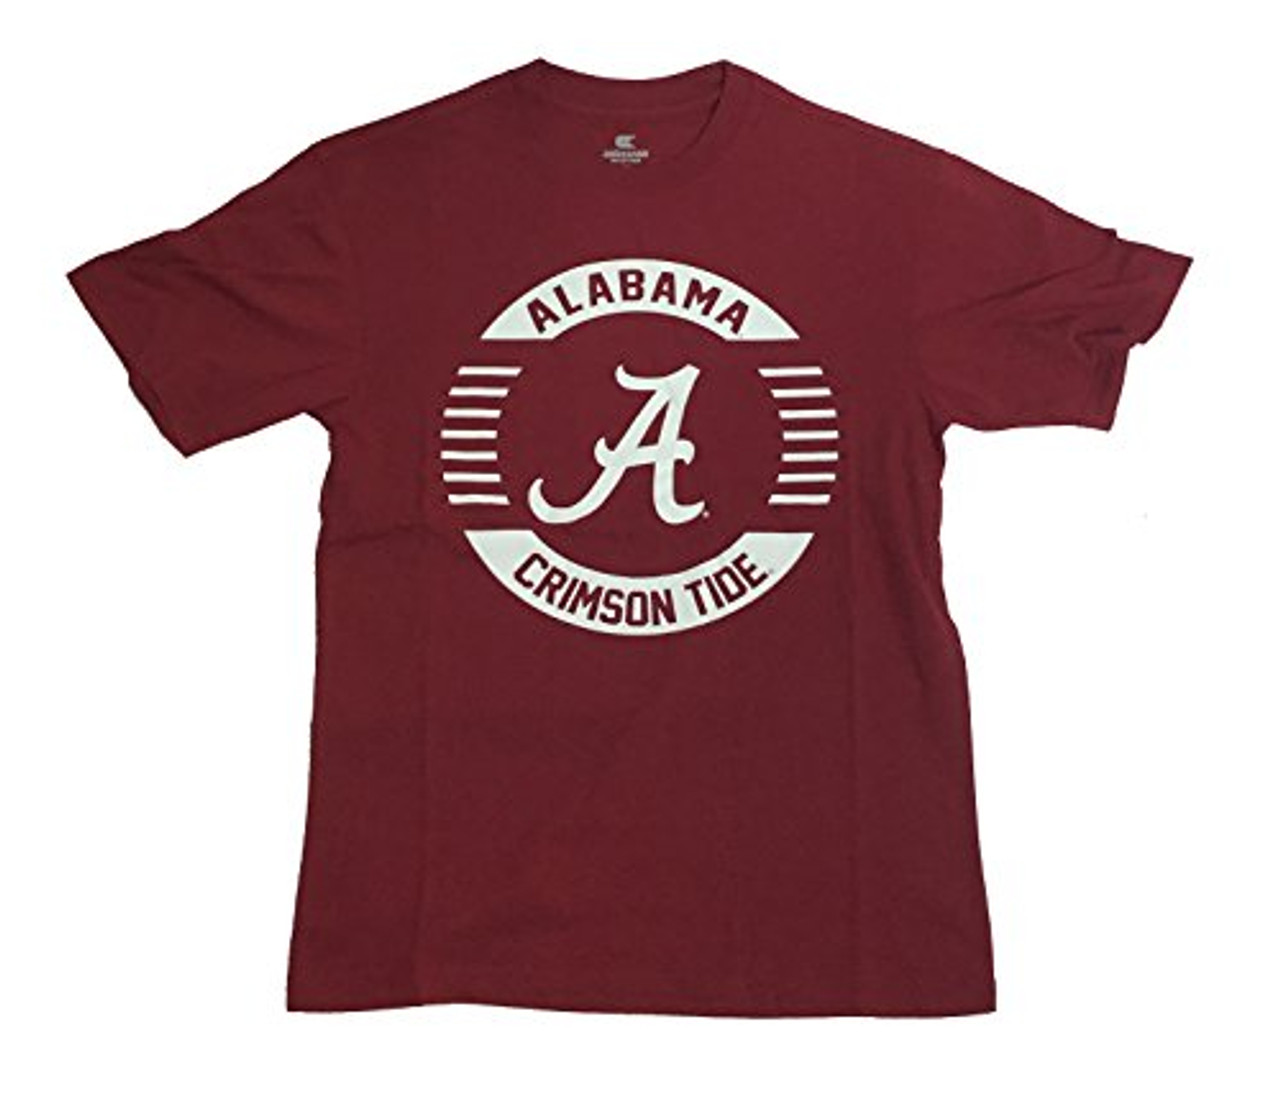 675a7bb8 Colosseum Alabama Crimson Tide Men's Torque Short Sleeve T-shirt - Trenz  Shirt Company